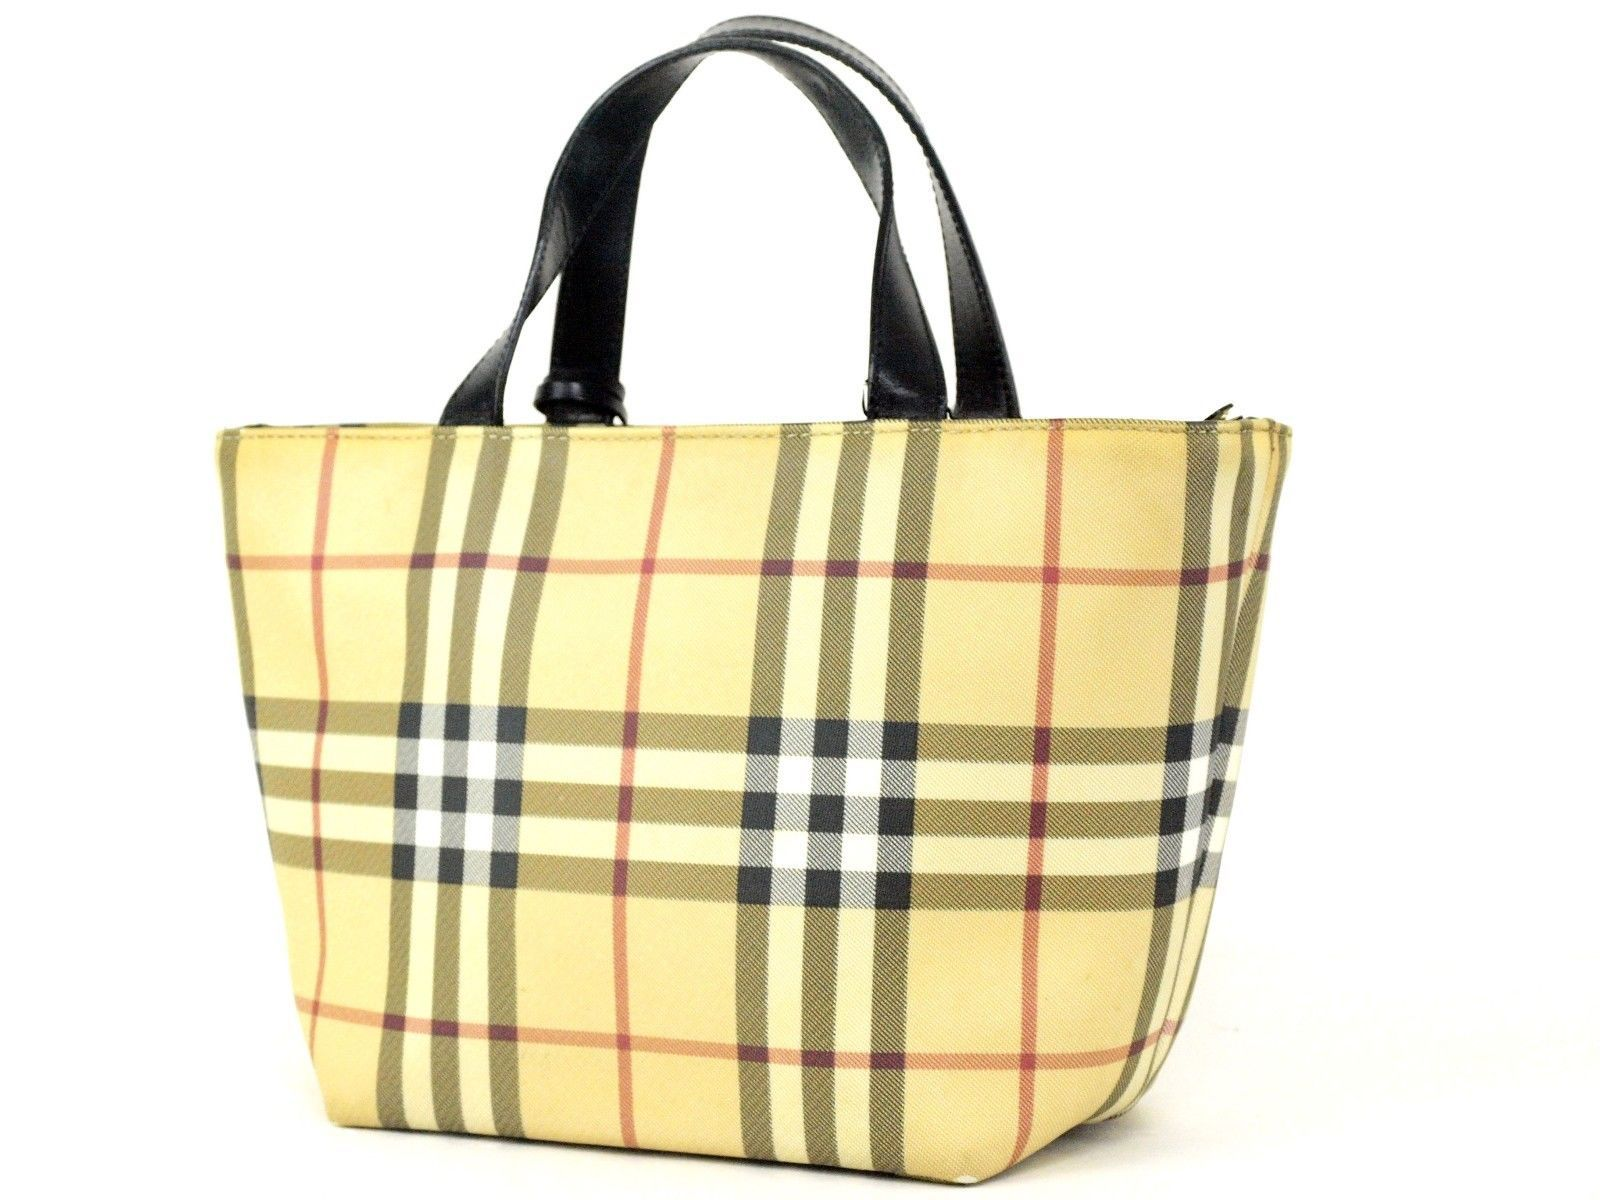 8d640434823 ... Authentic Burberry London Nova Check PVC Canvas   Leather Hand Bag  Italy Vintage ...